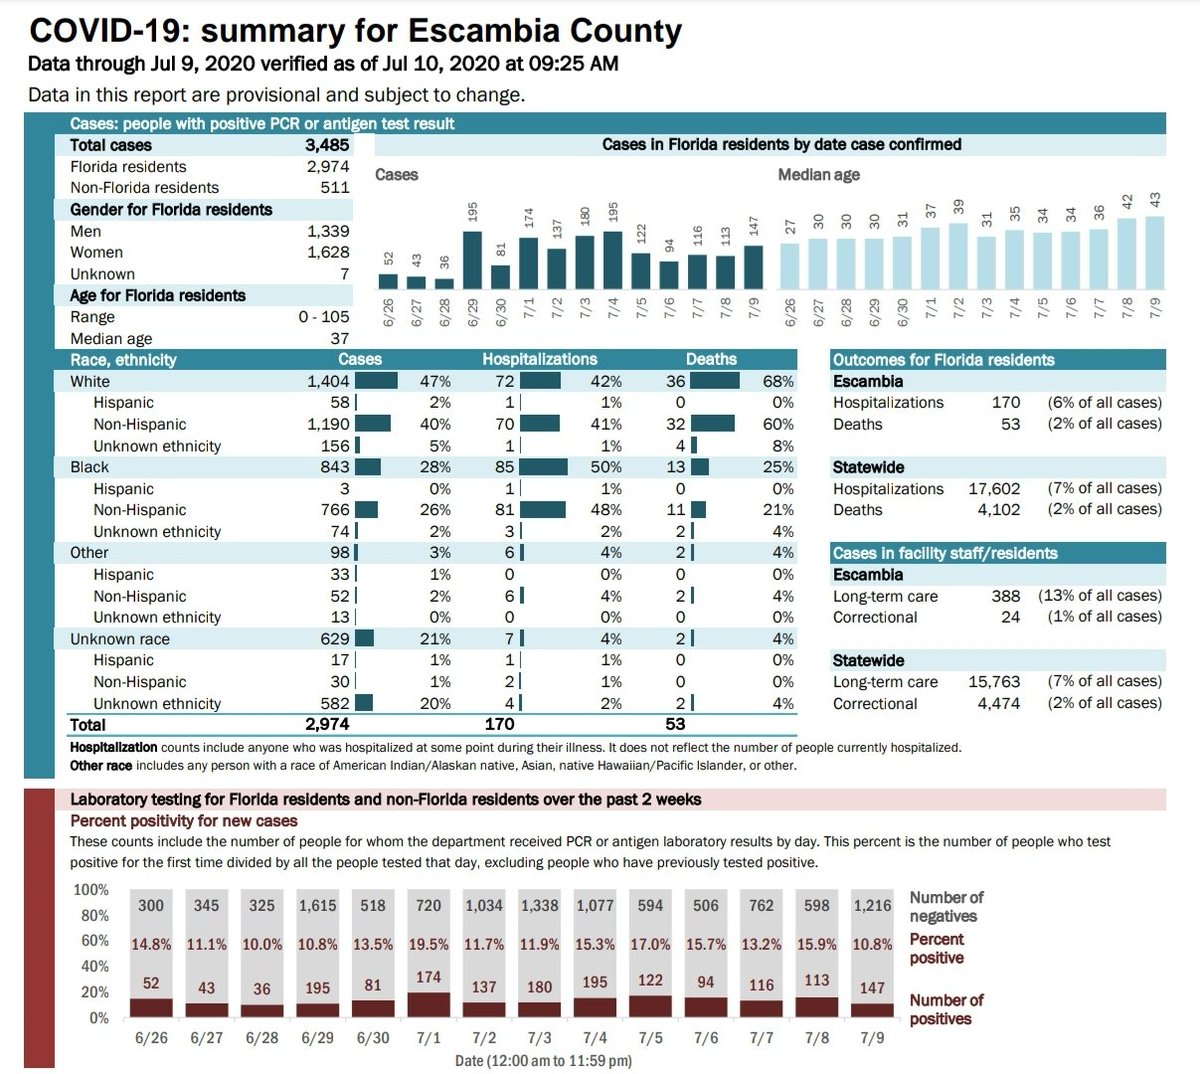 #EscambiaCounty #FL 7/10 Update 153 new cases  11% positivity 15 new hospitalized  Hospital avail 27.21% FL Hosp. 19.99% 1 new death ICU avail 7.14% 8/118 ICU beds FL ICU avail 15.52% #WearADamnMask #SocialDistance #StayHome as much as you can & #GetYourFluShot #MaskUpEscambia